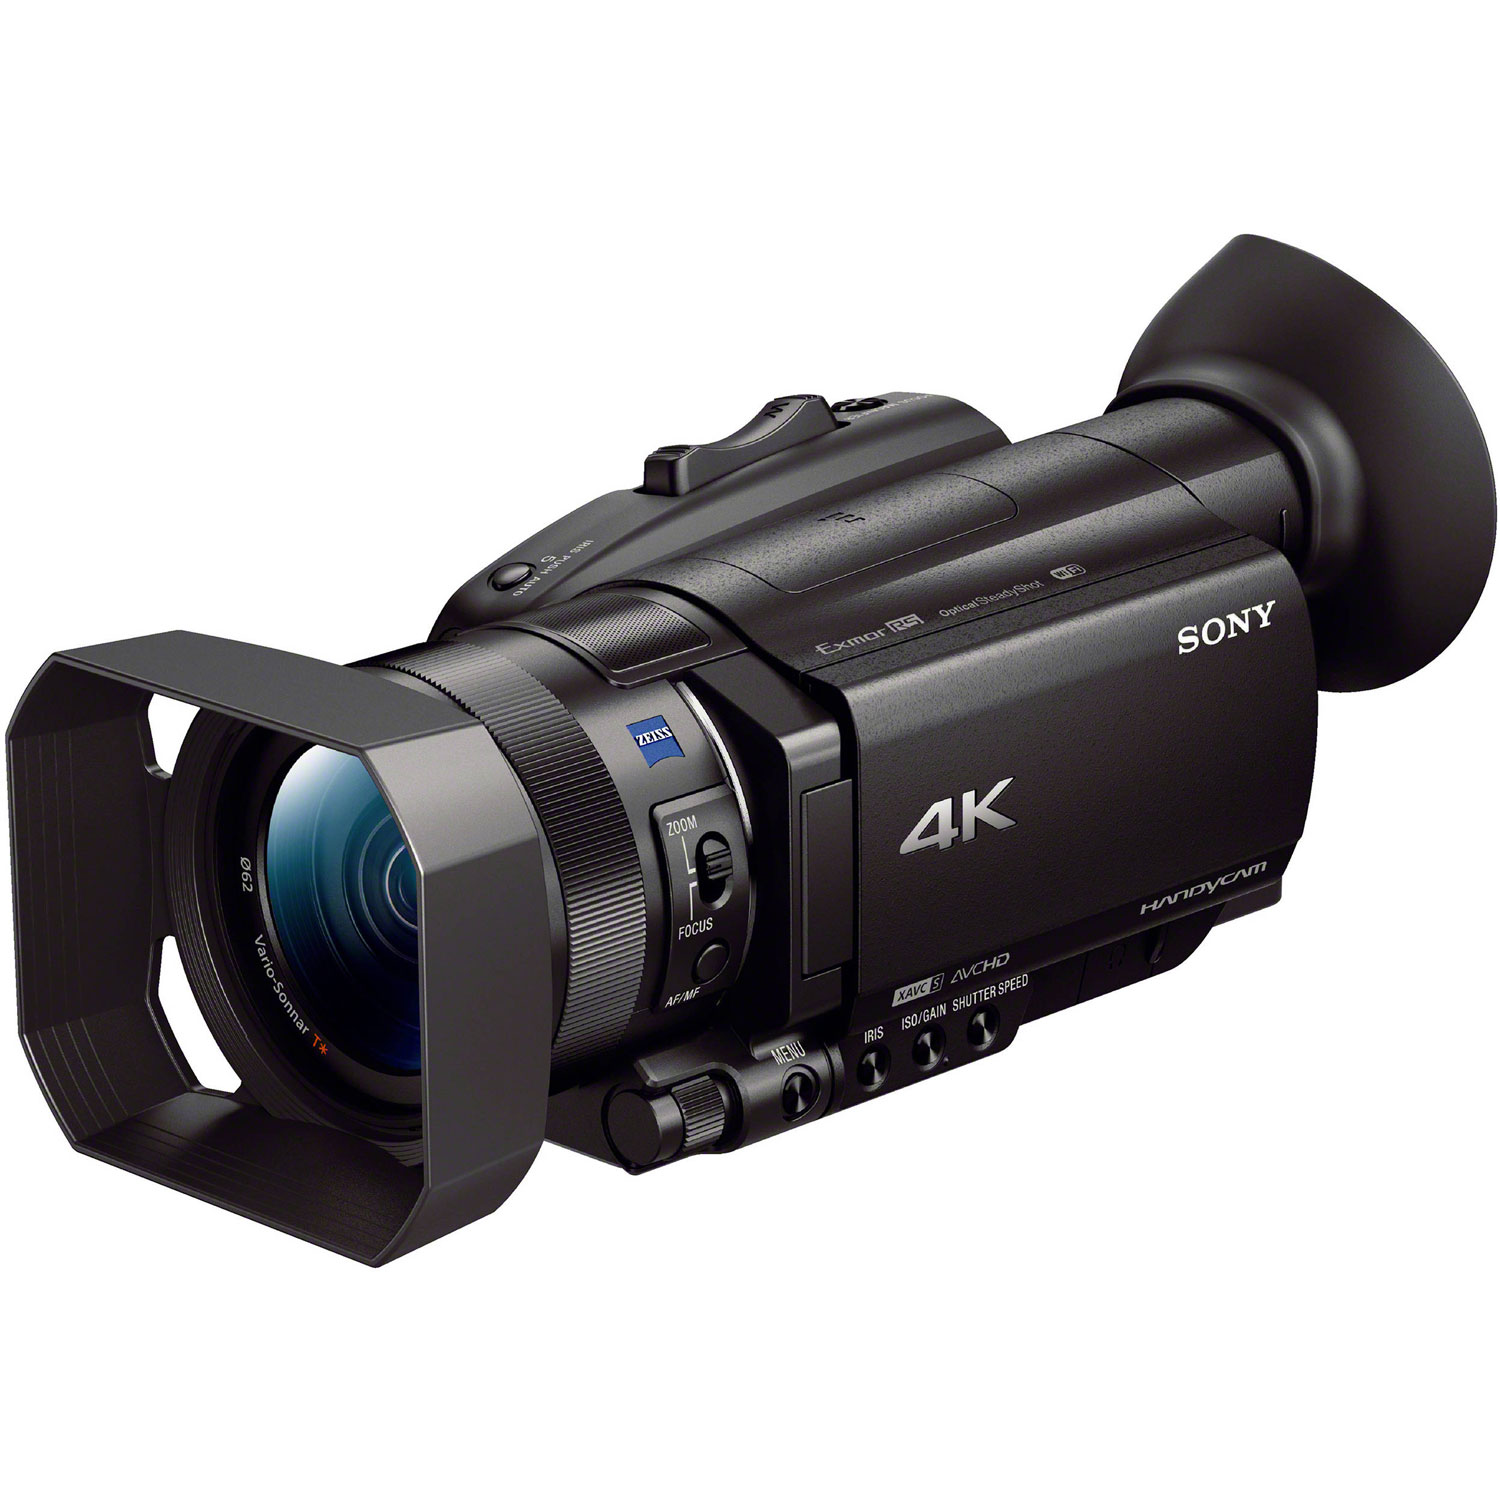 Click here for FDR-AX700 4K Camcorder prices